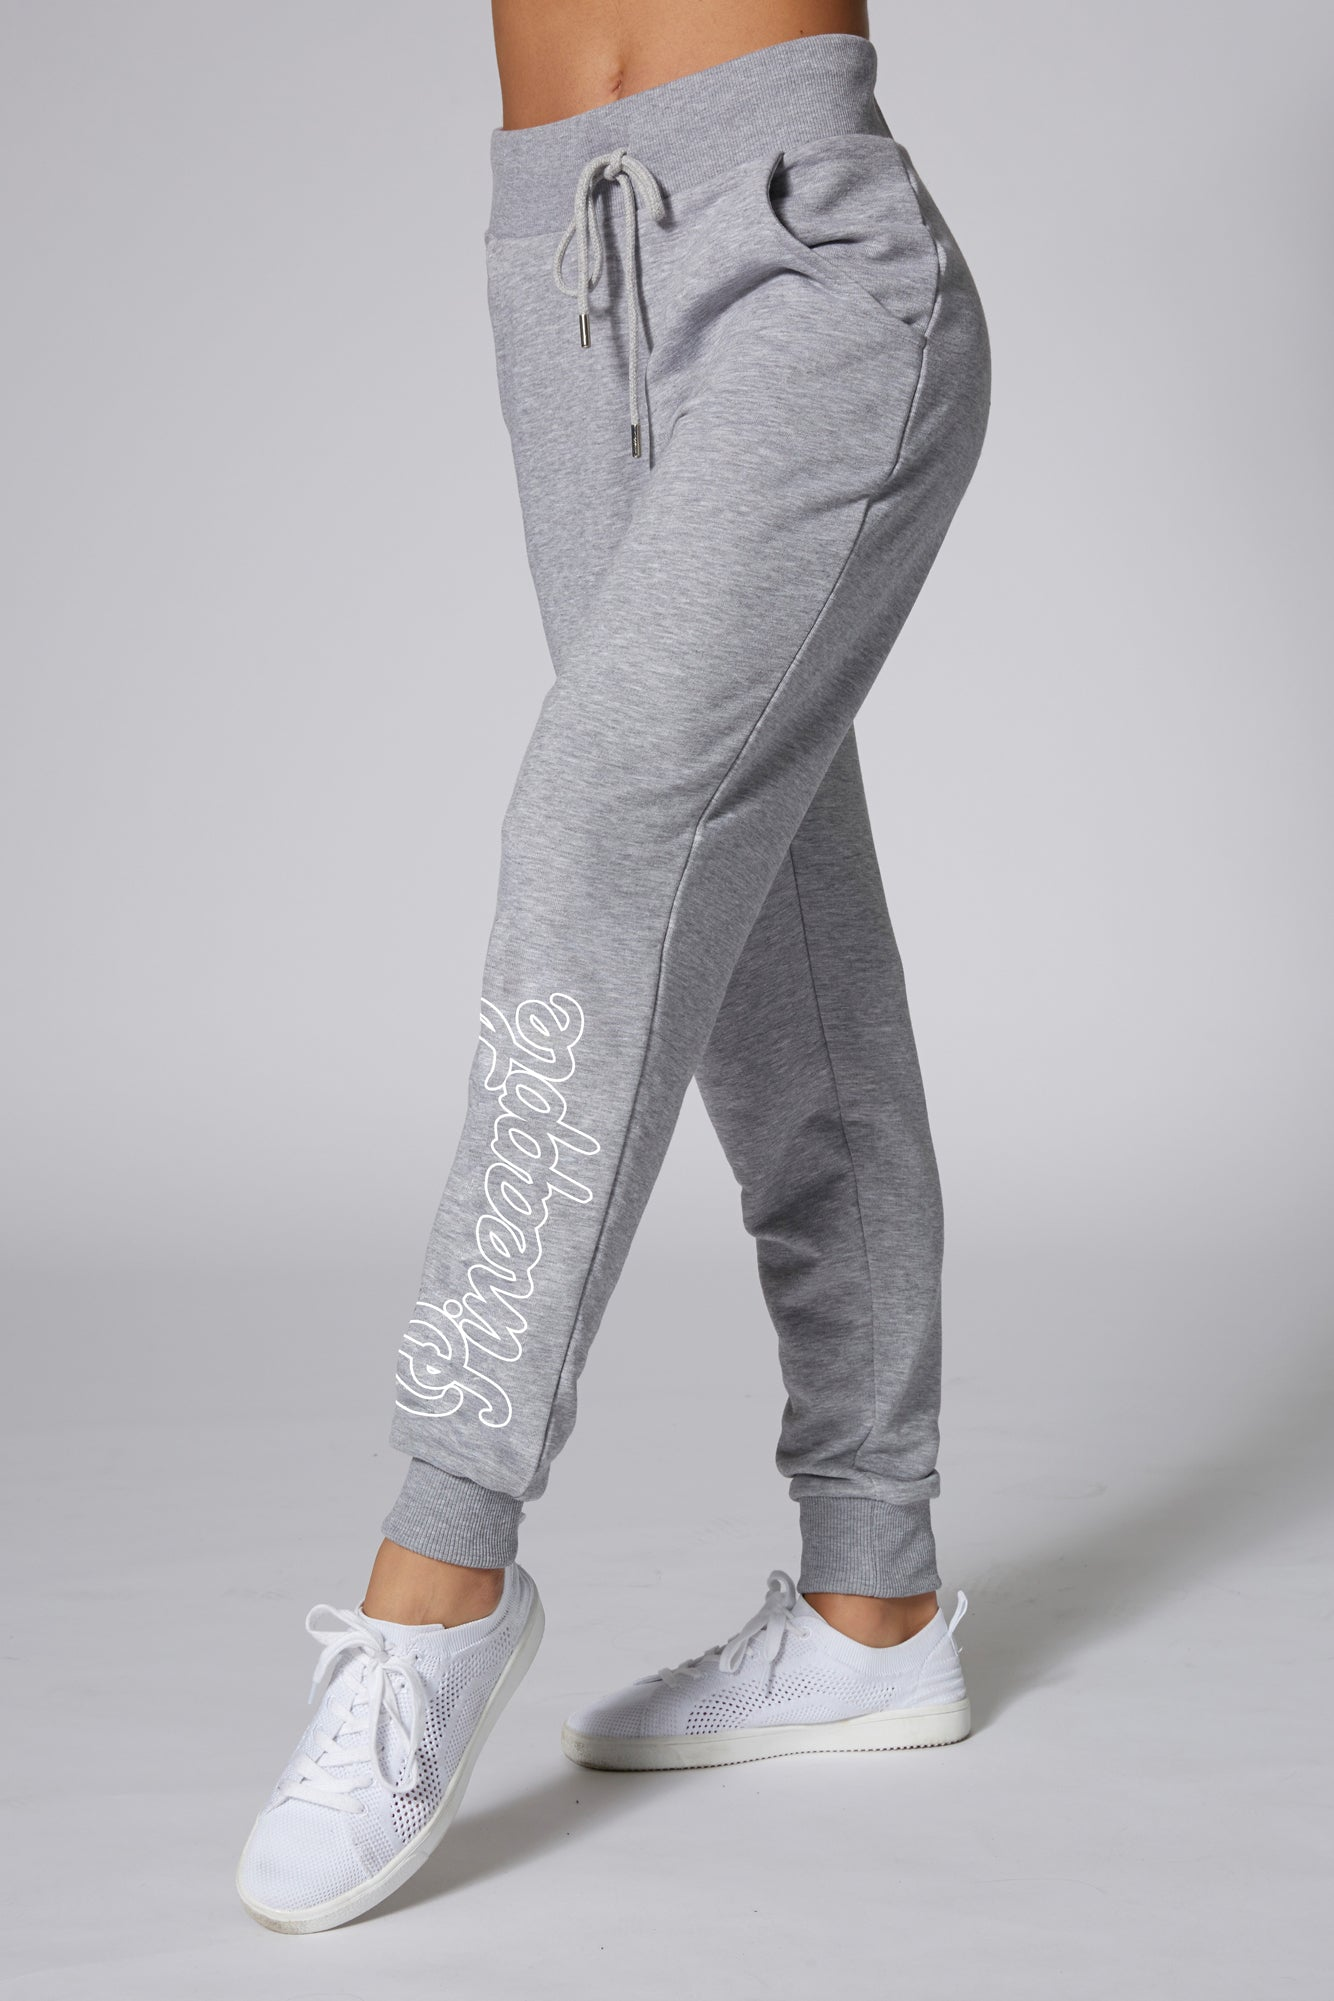 Pineapple Dancewear Women's Grey Loopback Joggers